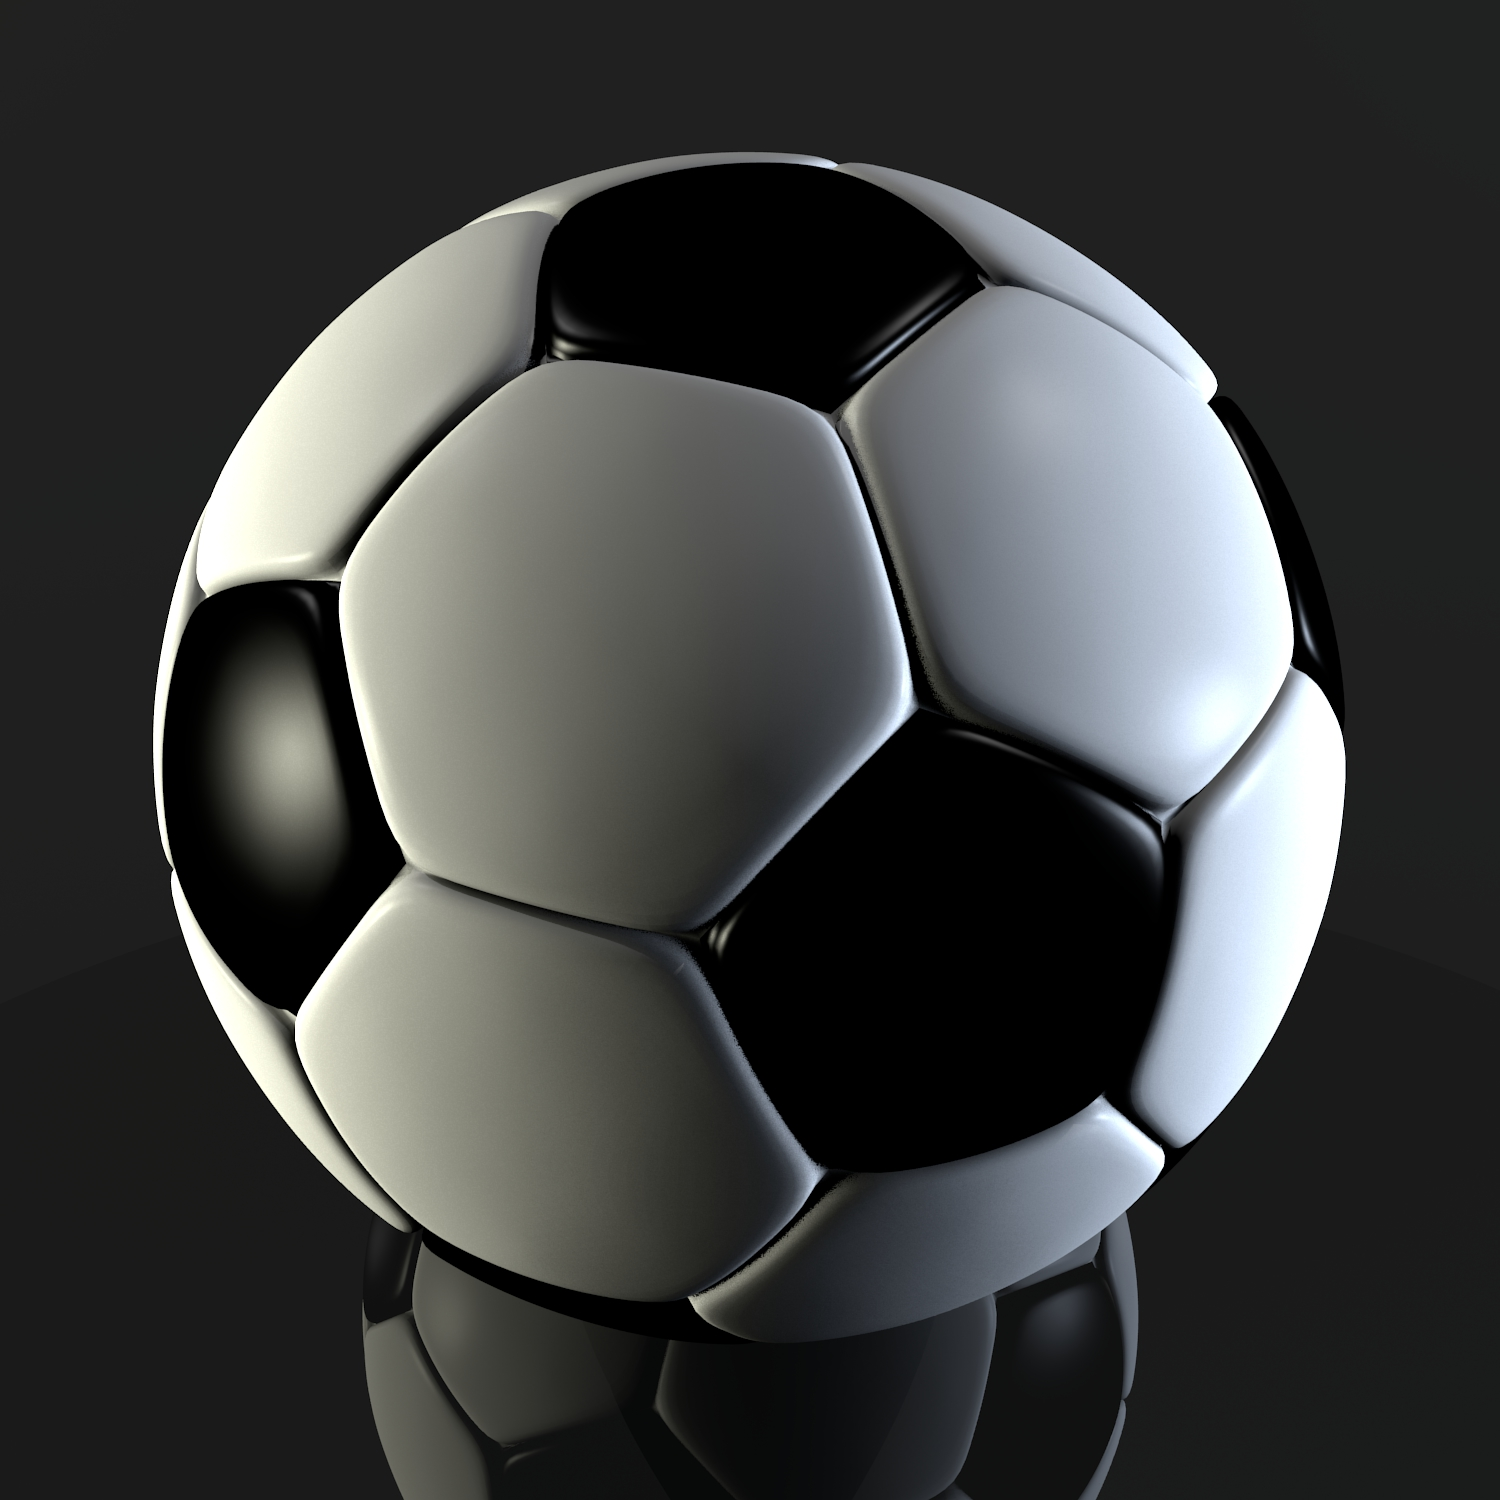 soccer ball v2 3d model blend obj 116217